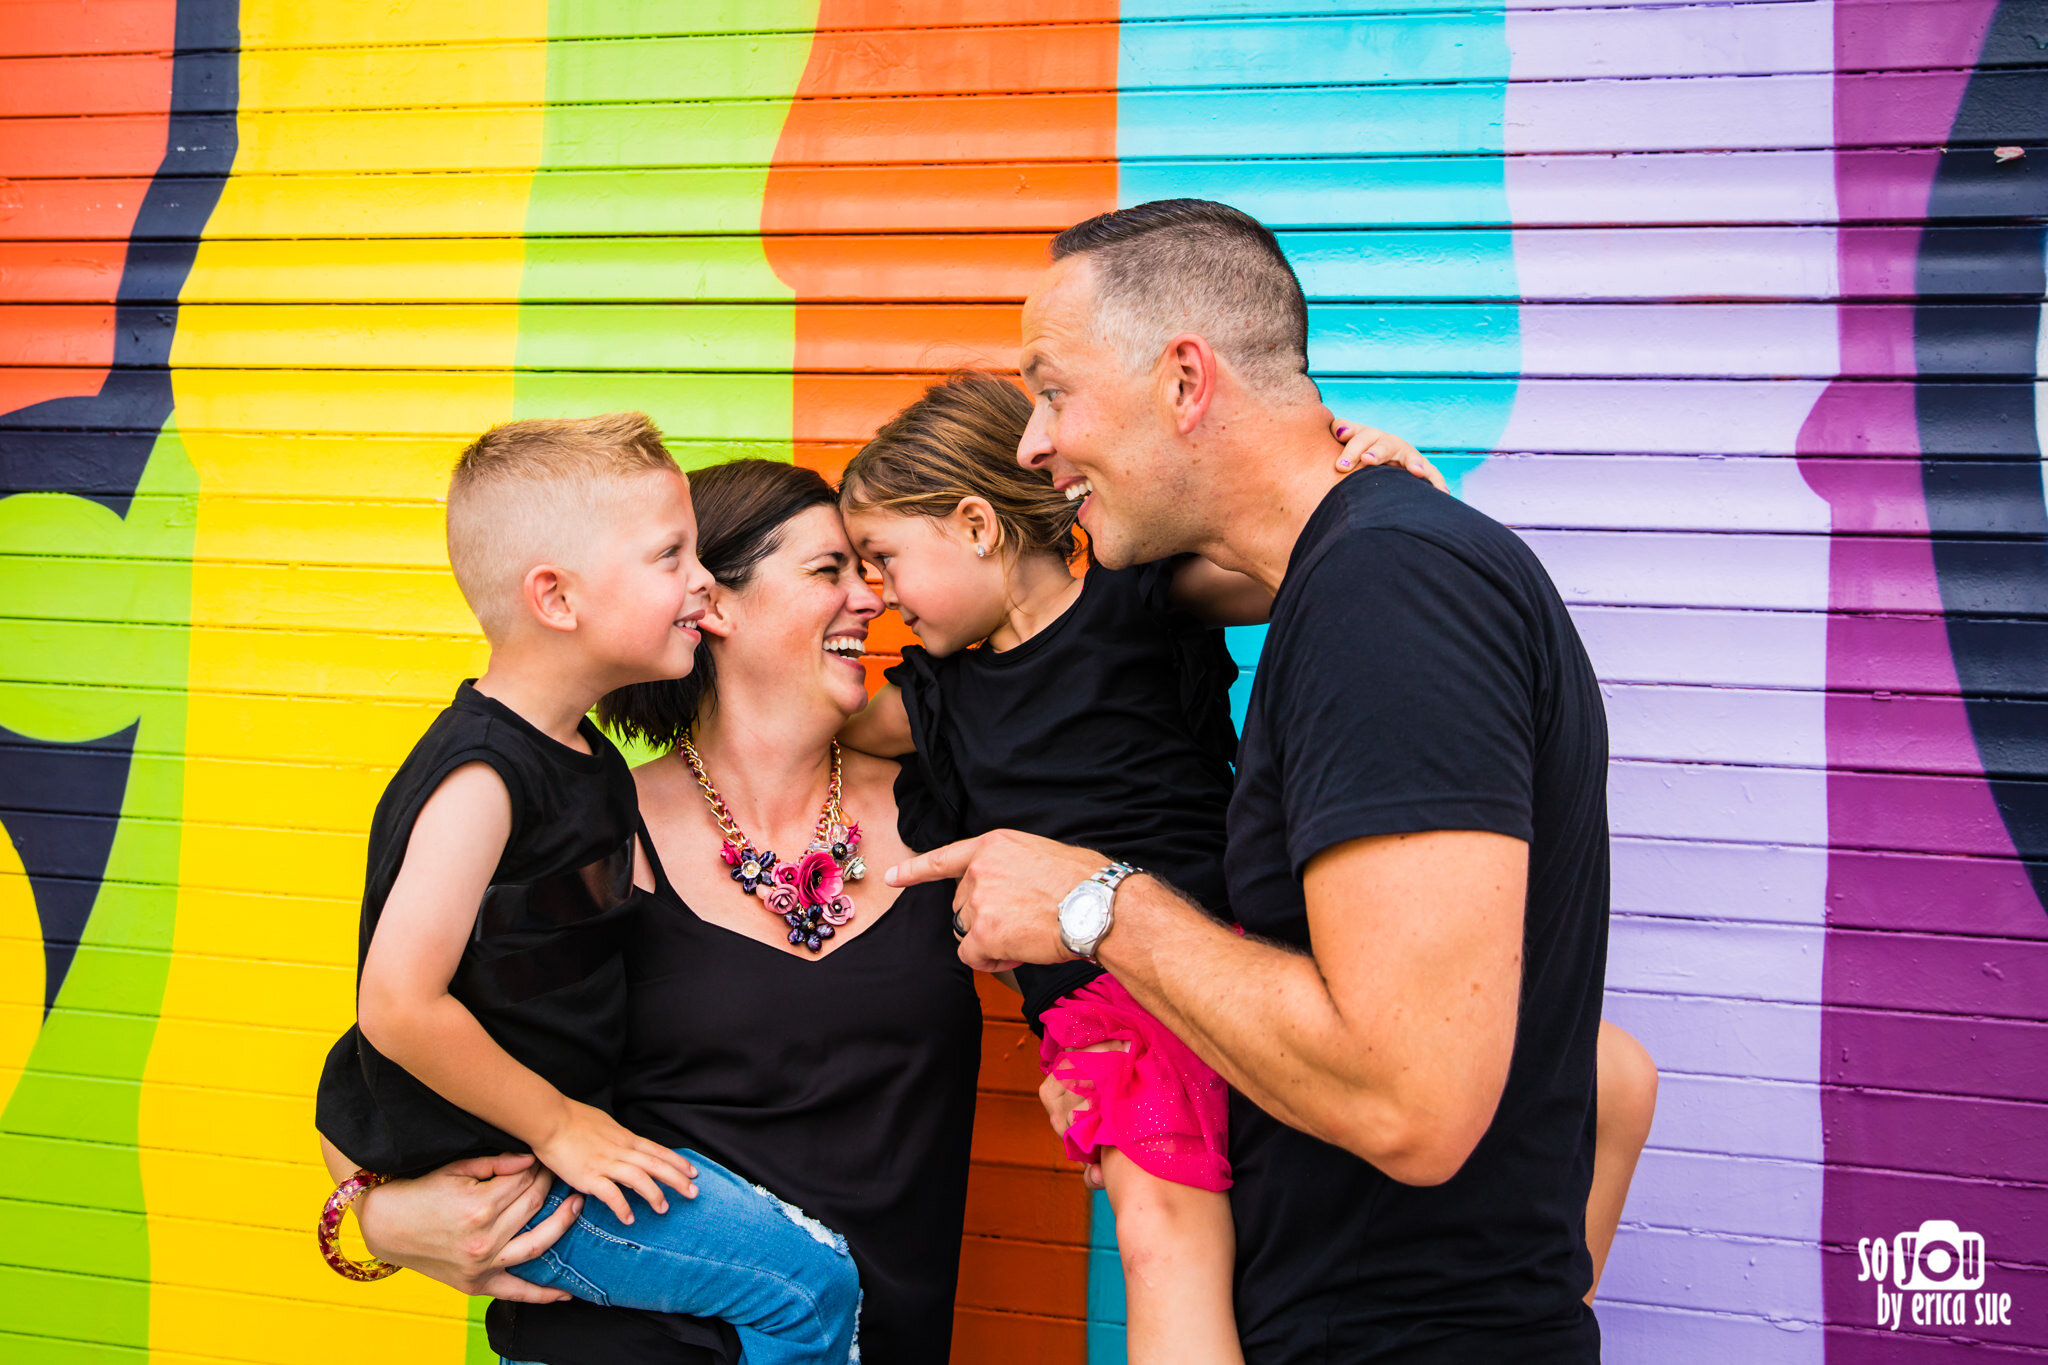 so-you-by-erica-wynwood-walls-lifestyle-family-photographer-session-2488.JPG